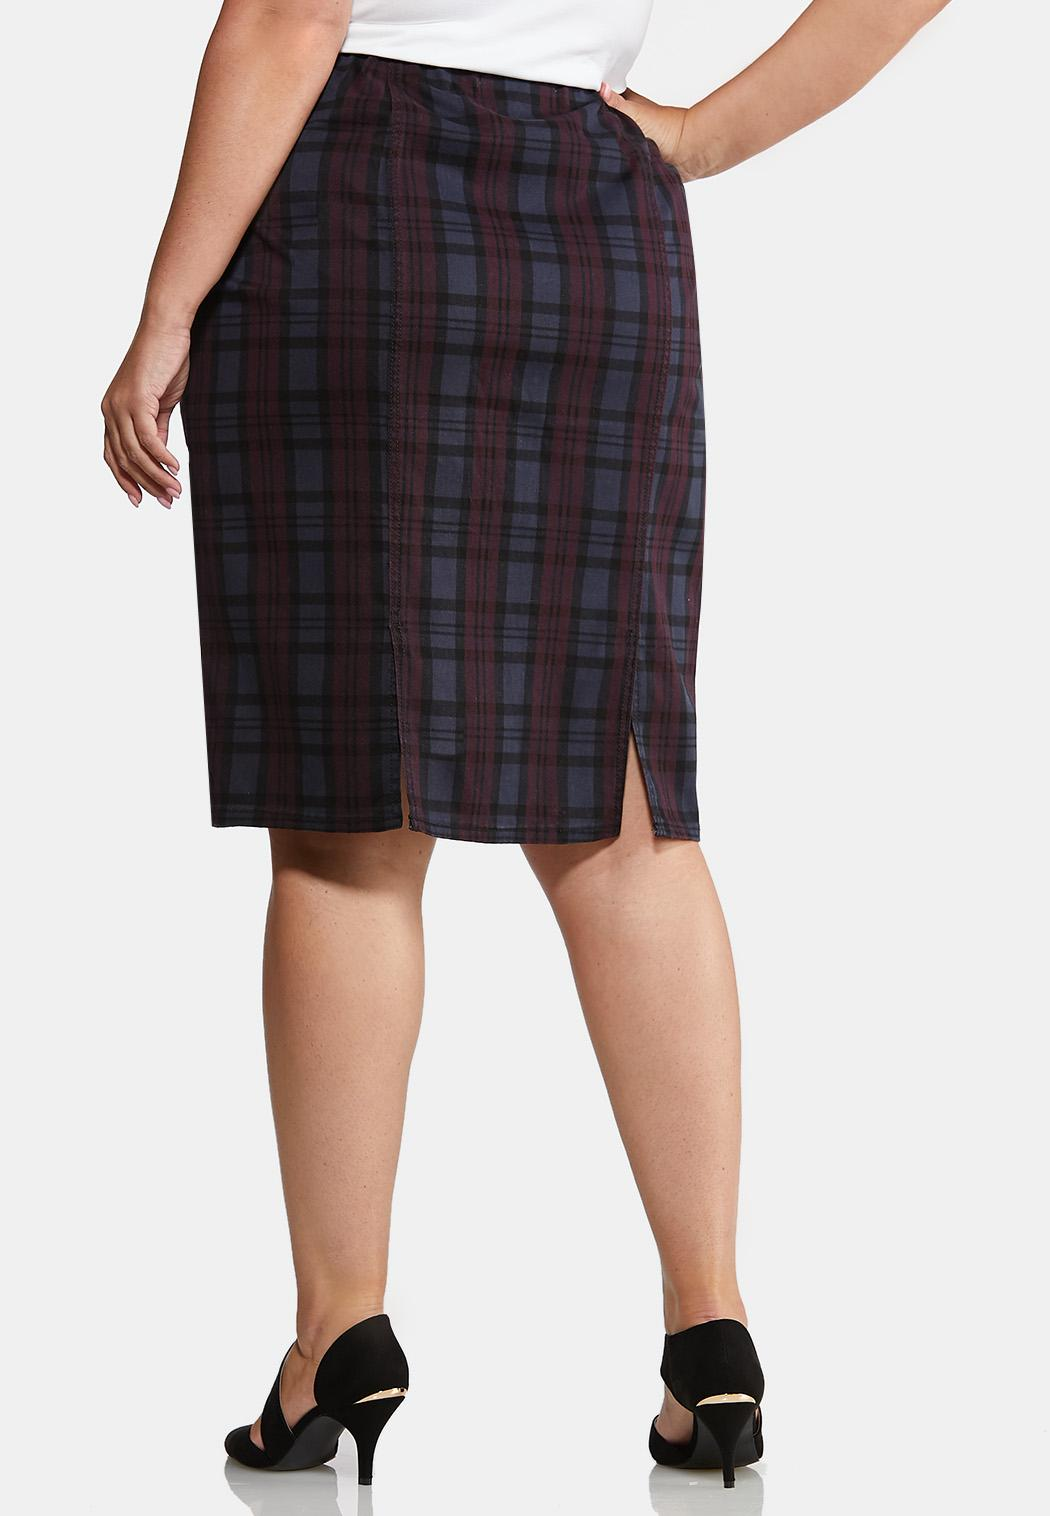 Plus Size Purple Plaid Pencil Skirt (Item #43993882)